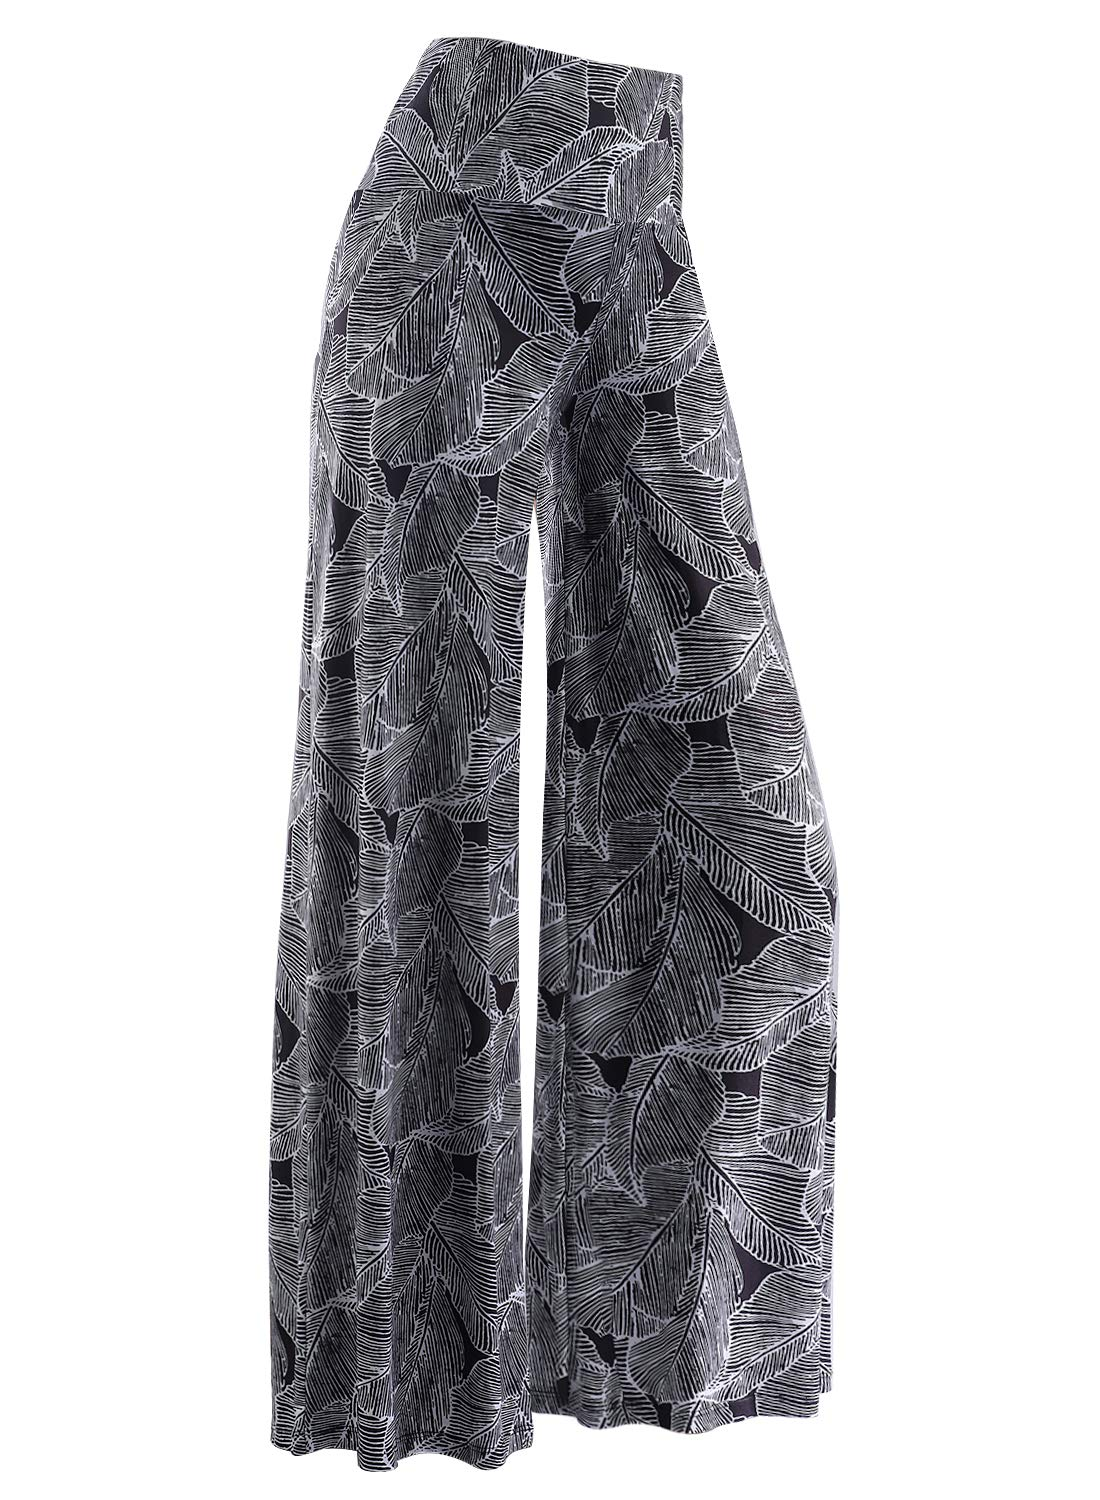 Plus Size Clothing - Women's Stretchy Wide Leg Palazzo Lounge Pants